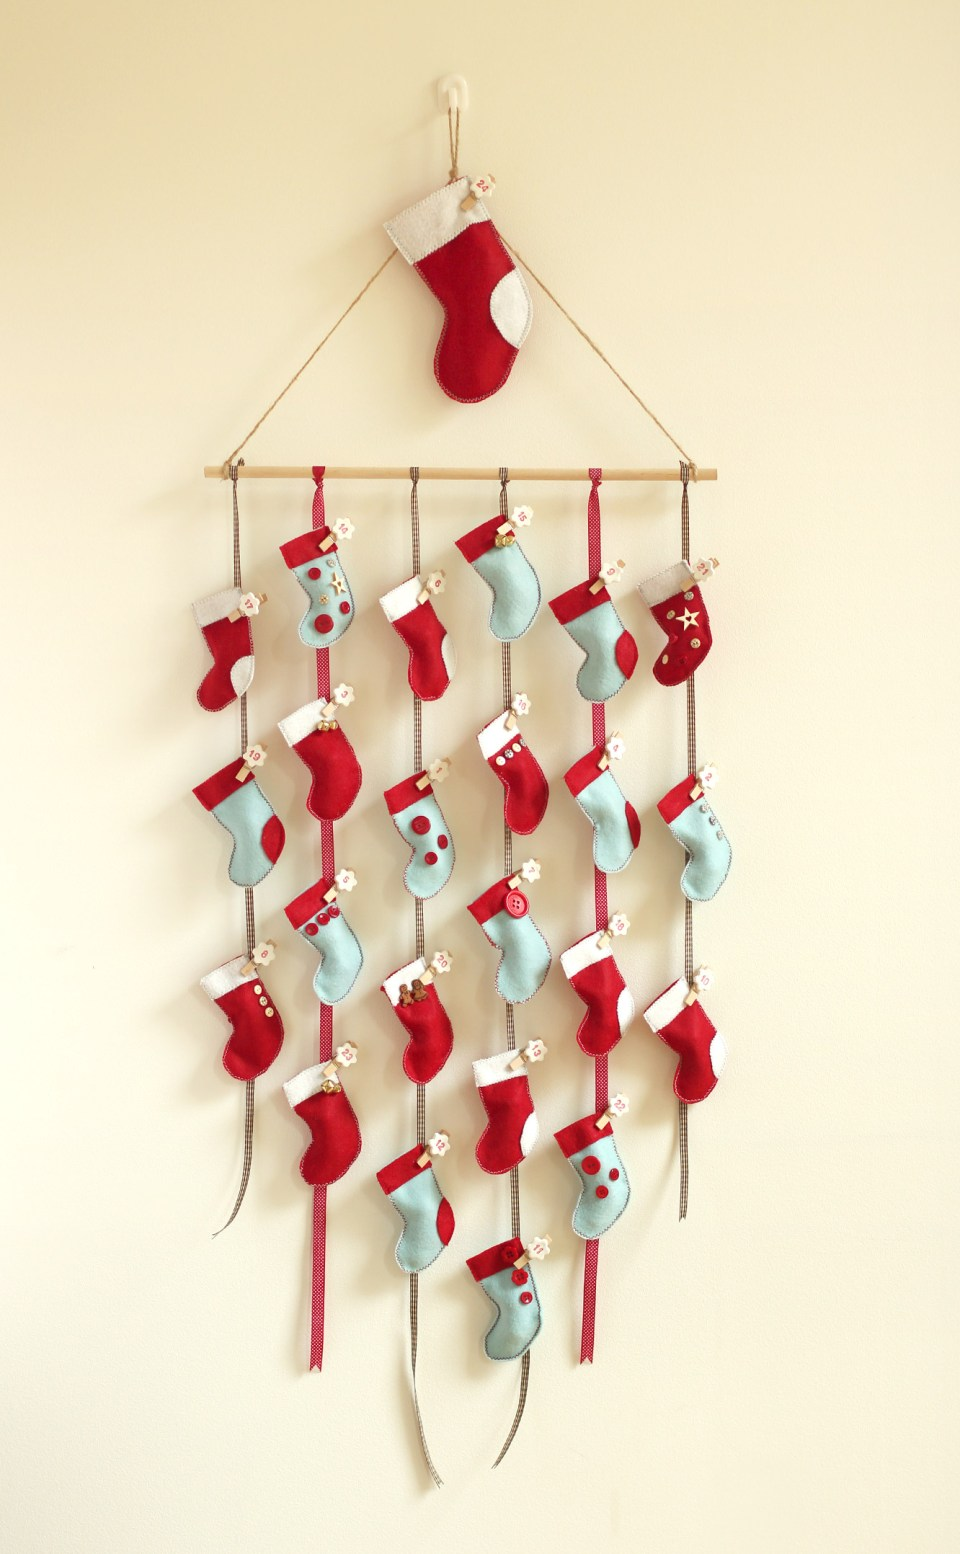 Diy Stocking Advent Calendar : Santa claus is coming to town fabrefaction